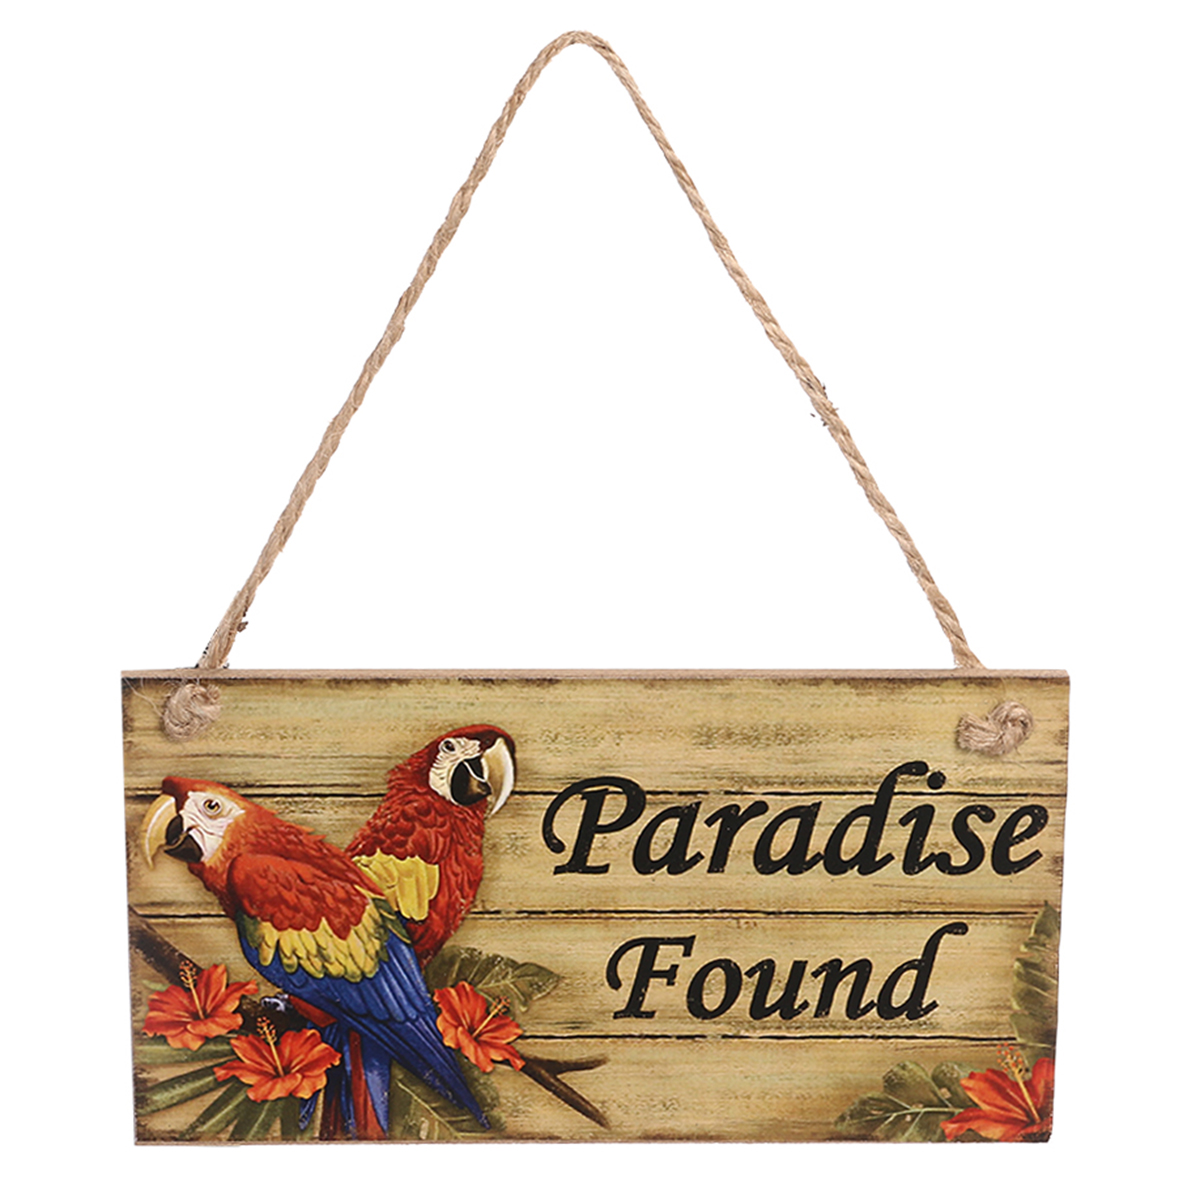 Us 6 13 25 Off Hawaii Beach Themed Party Paradise Found Rectangle Vintage Home Decor Sign Wooden Plaque Hanging Wall Sign Decoration In Party Diy